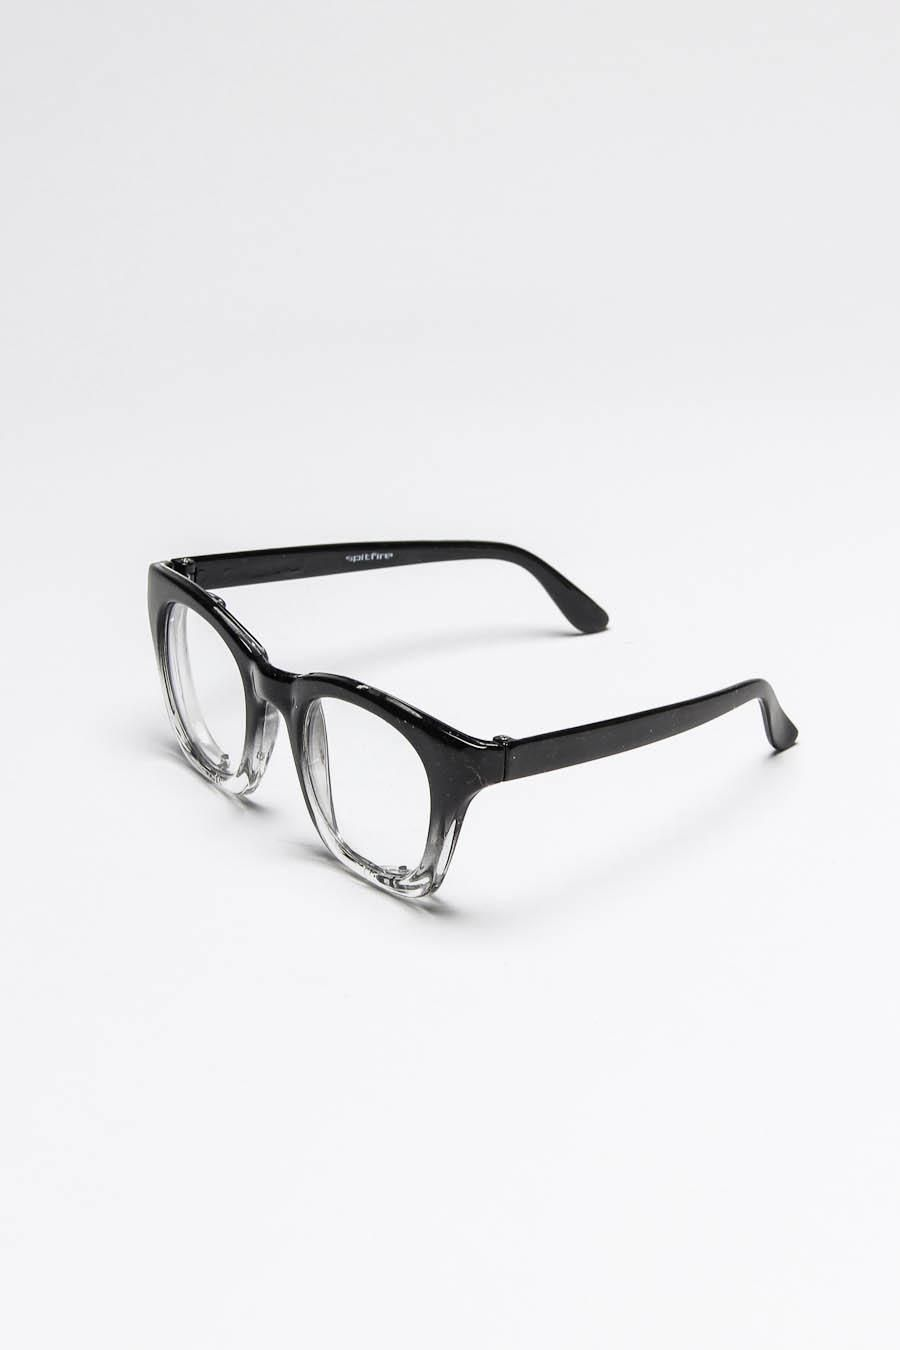 5d6e4f4f34 Black + Clear Frame Glasses (he would look so adorable in these ...